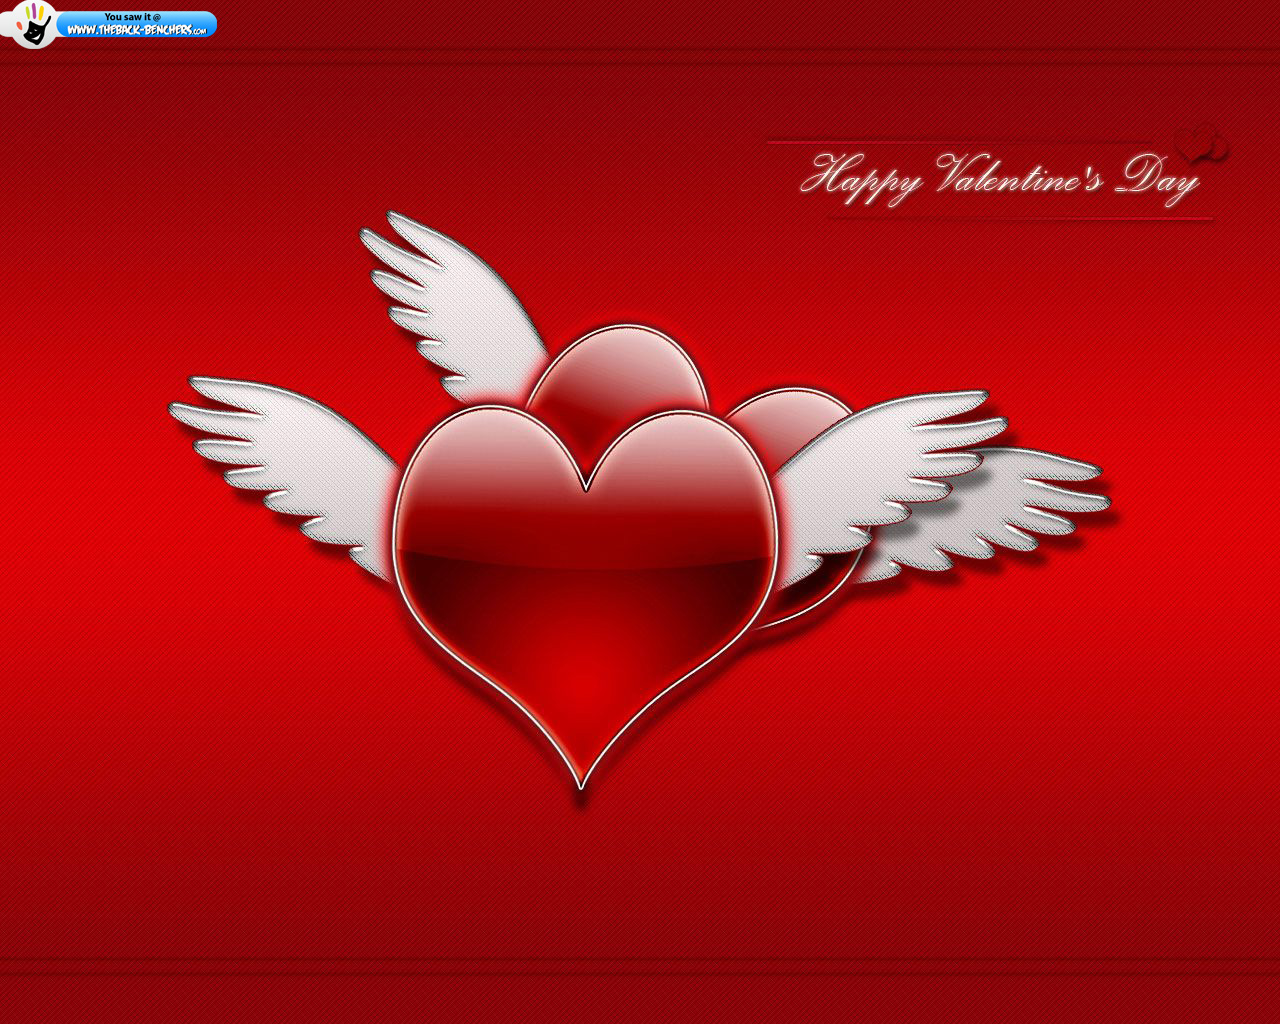 Happy Valentines Day 3d 2012